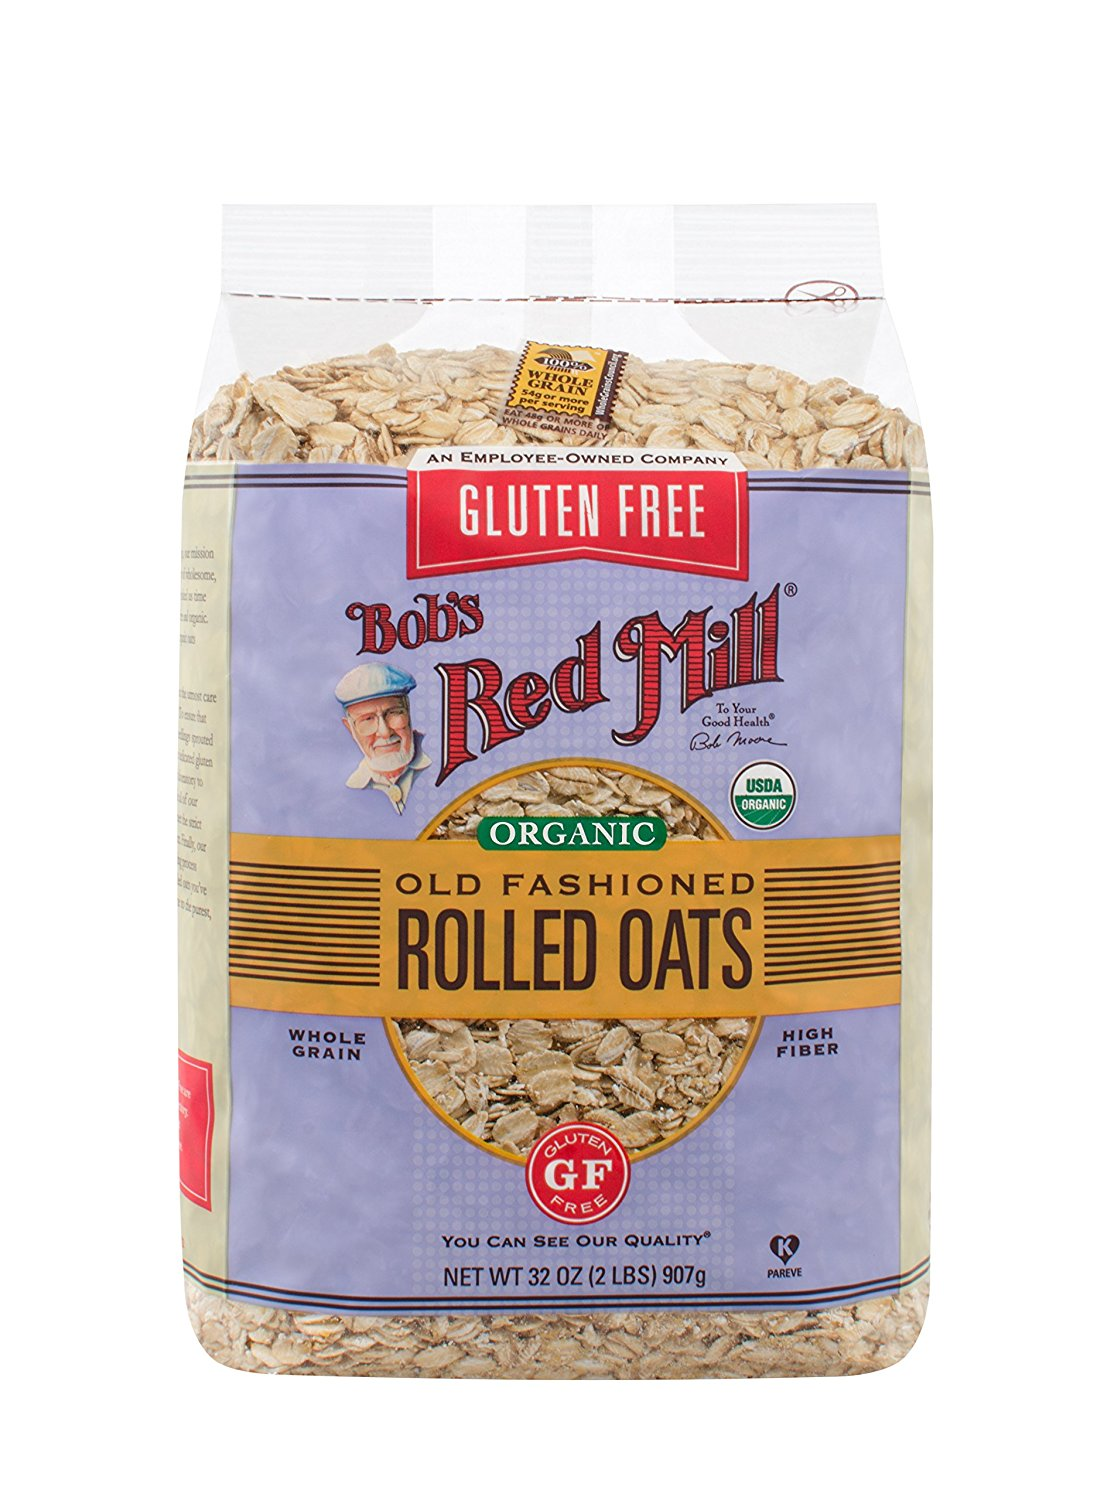 Bob's Red Mill Gluten Free Organic Old Fashioned Rolled Oats - Buy Fast delivery